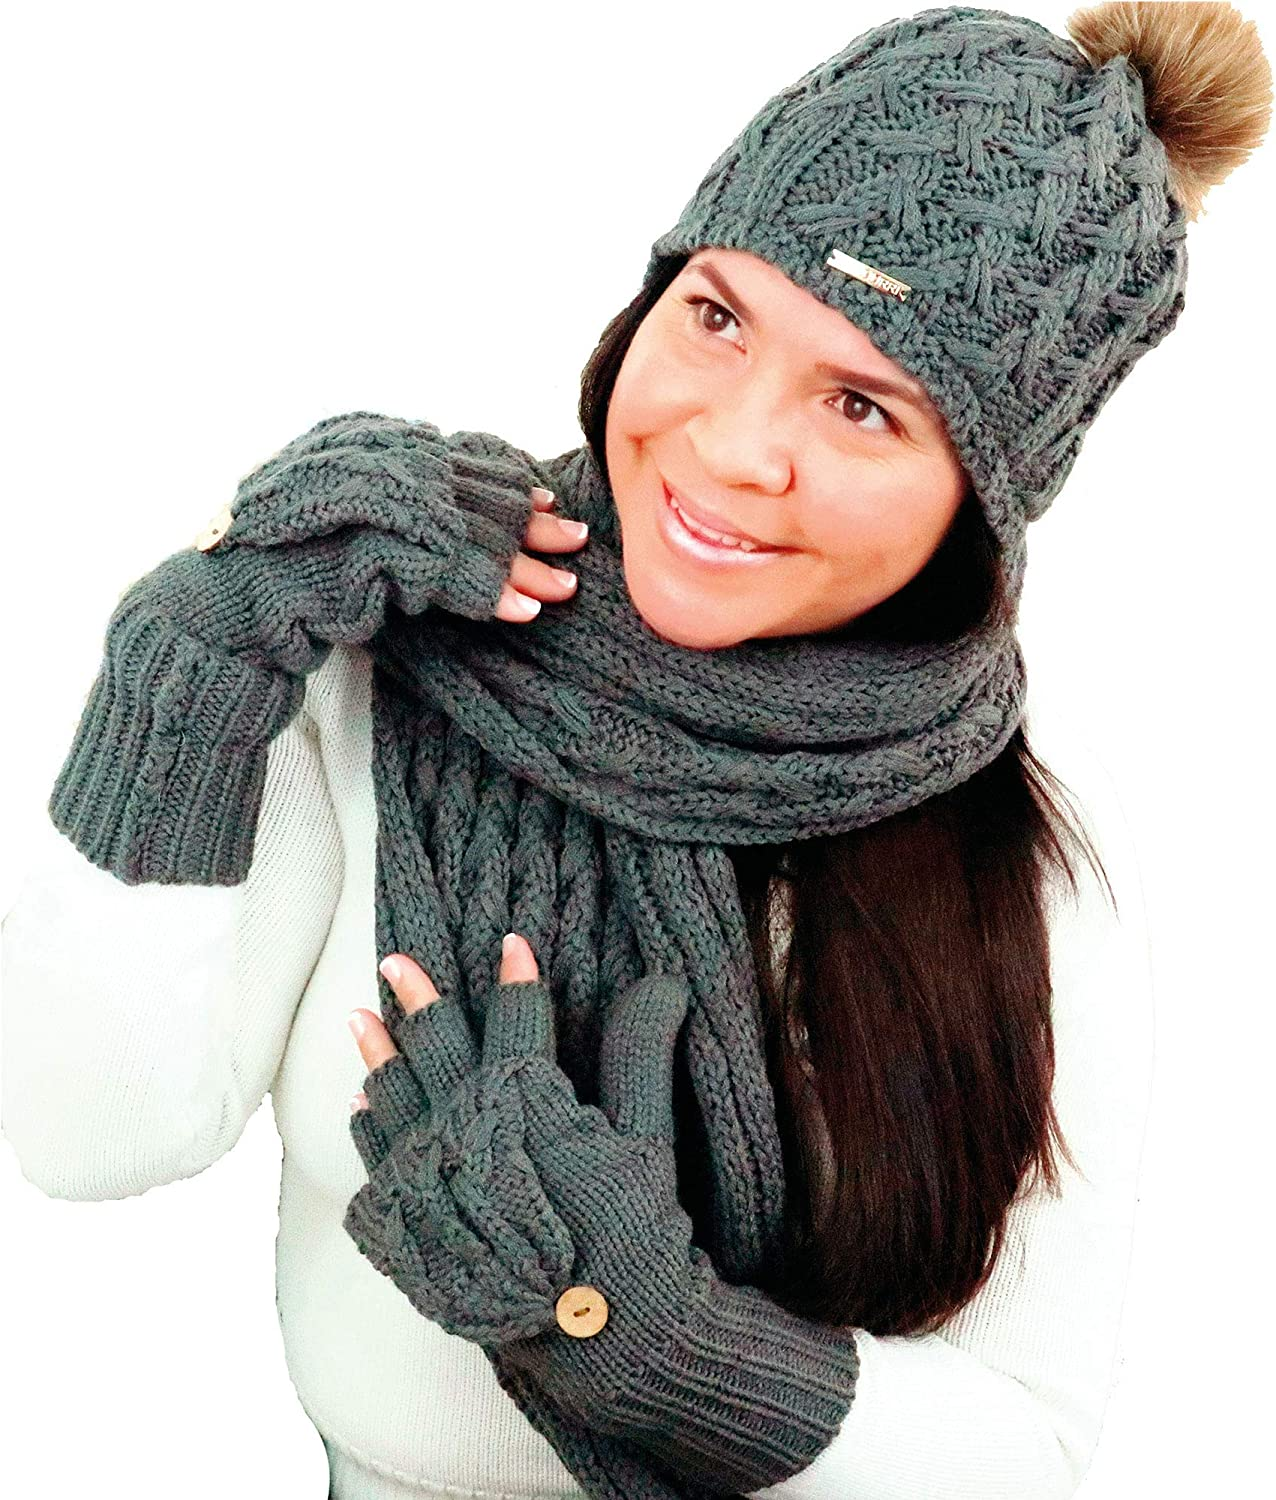 Supourri Hat Scarf Glove Set For Women Grey Color Hat Includes Pom Pom and Fleece Lining, Scarf Is Oversized, and Glove Is Pop Open Style Comfortable and Fashionable For Cold Winters